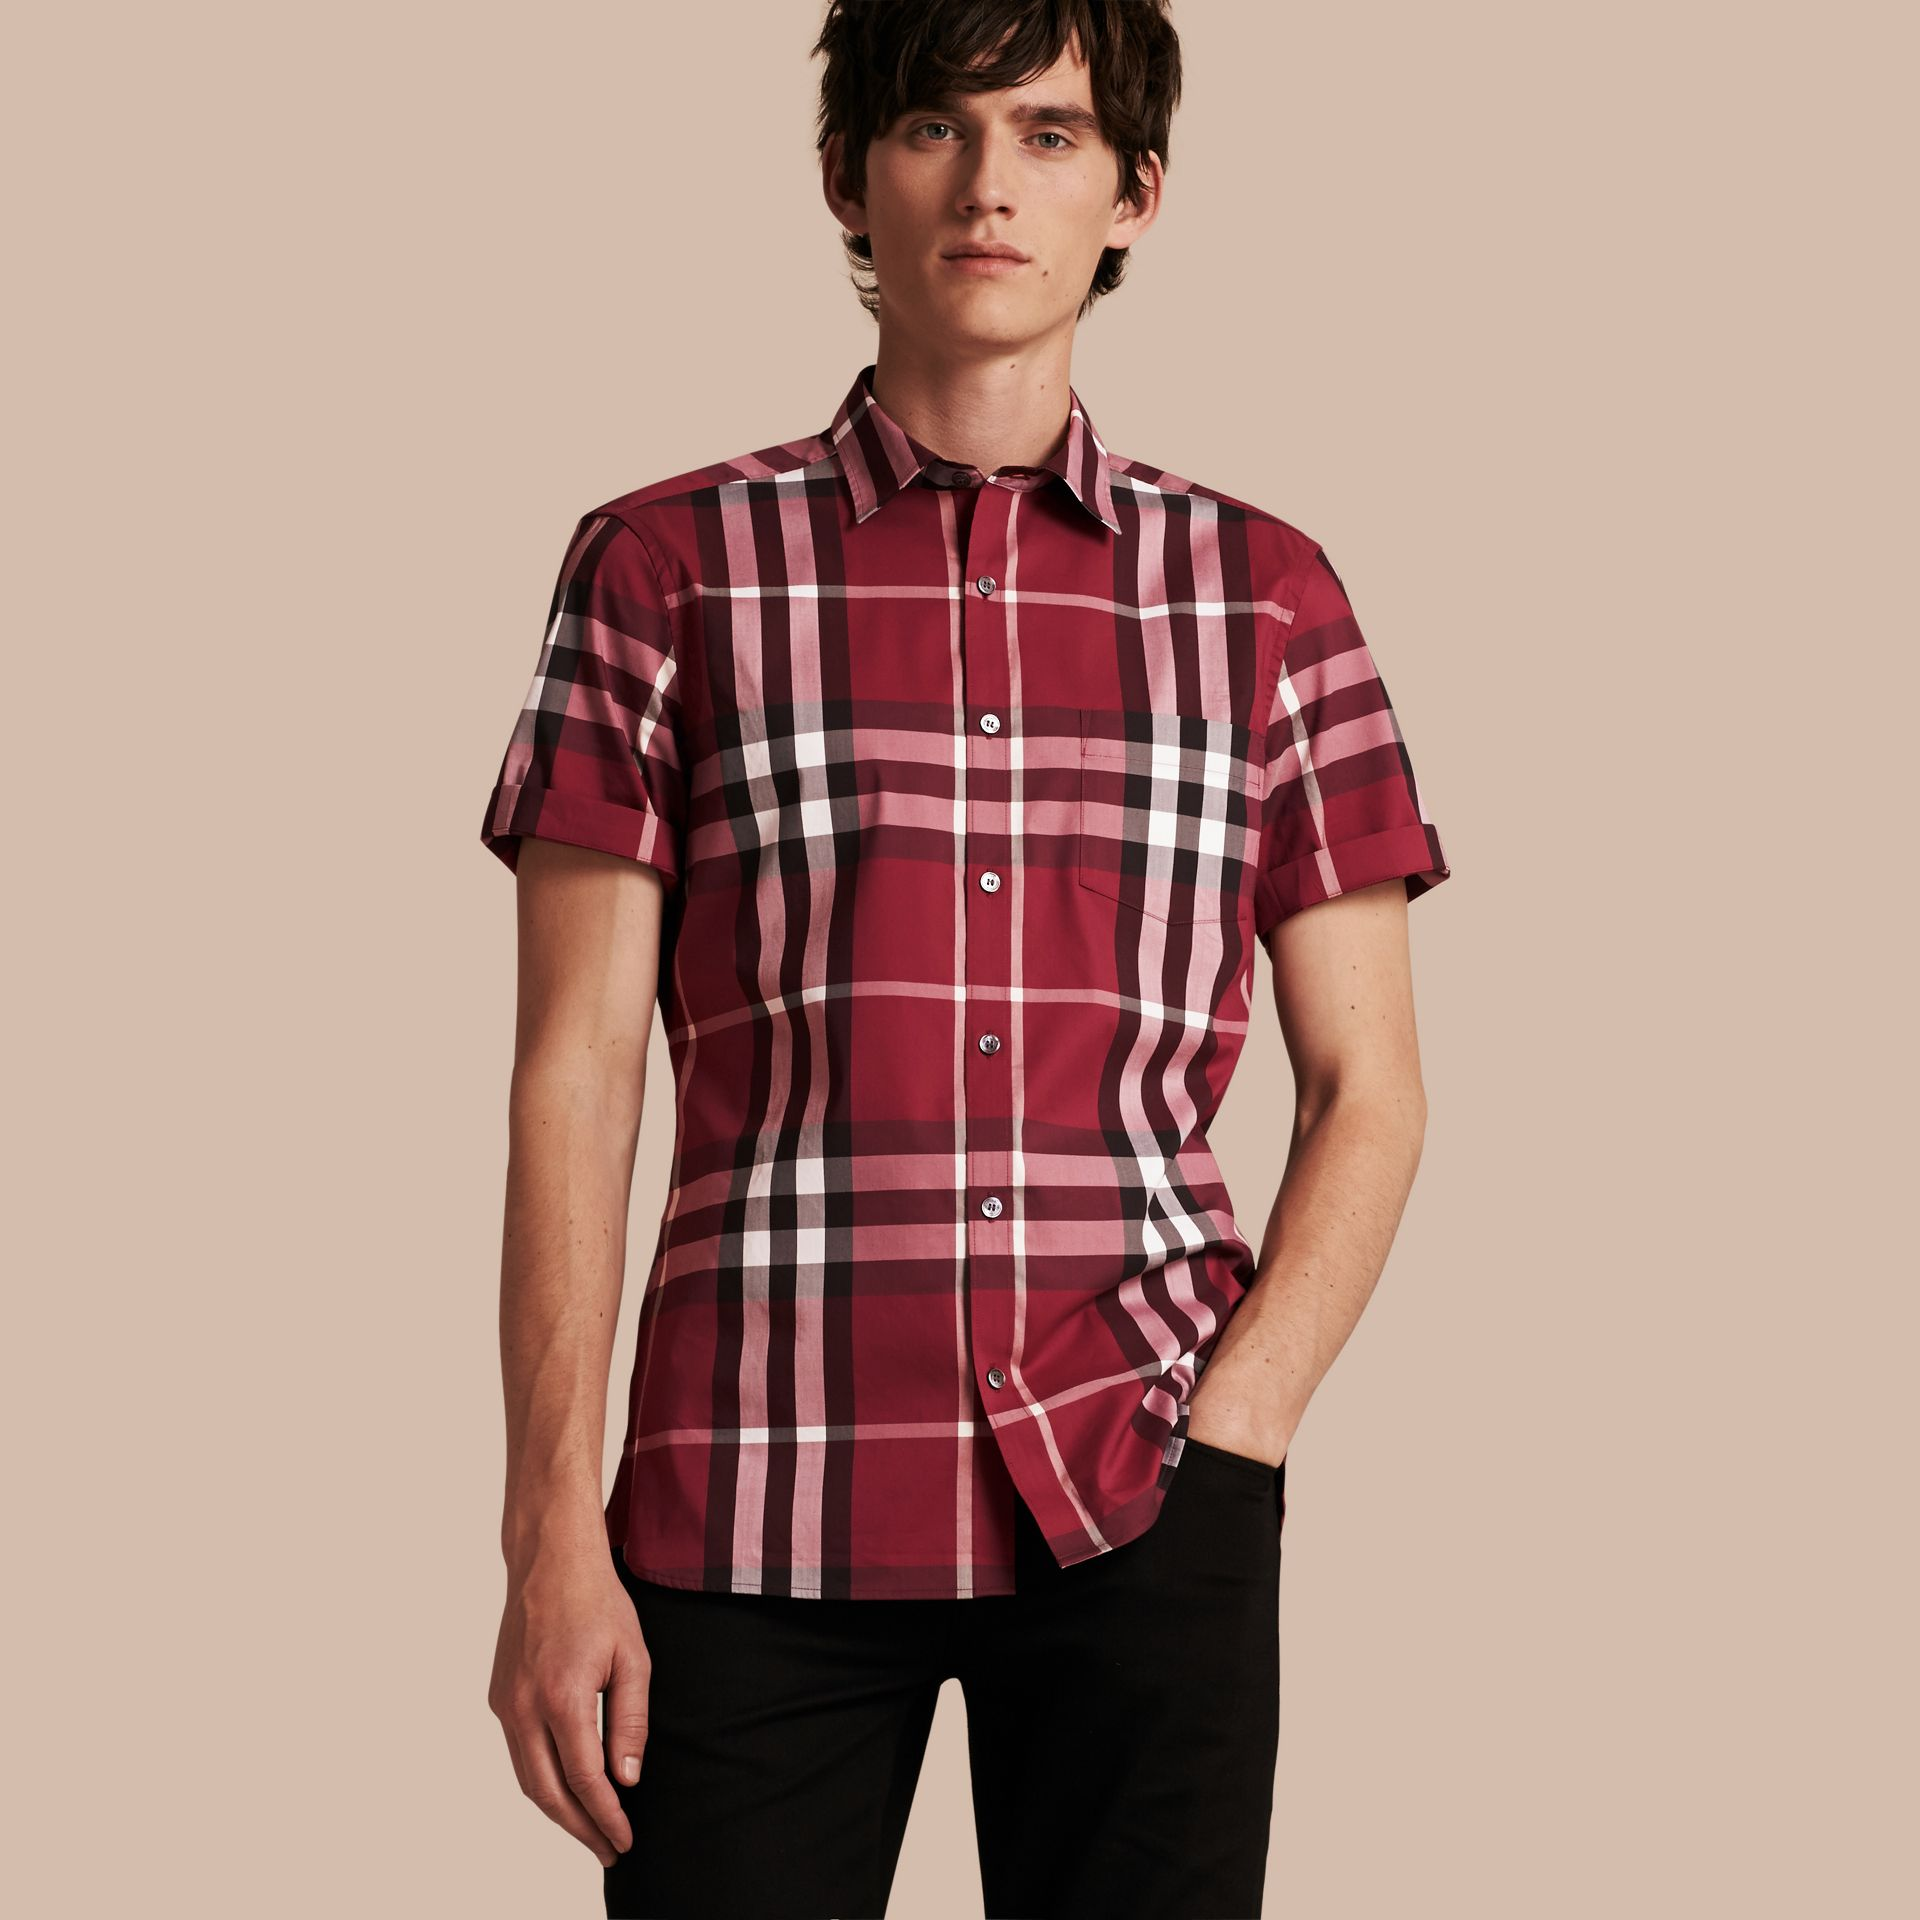 Short-sleeved Check Stretch Cotton Shirt in Plum Pink - Men | Burberry - gallery image 1